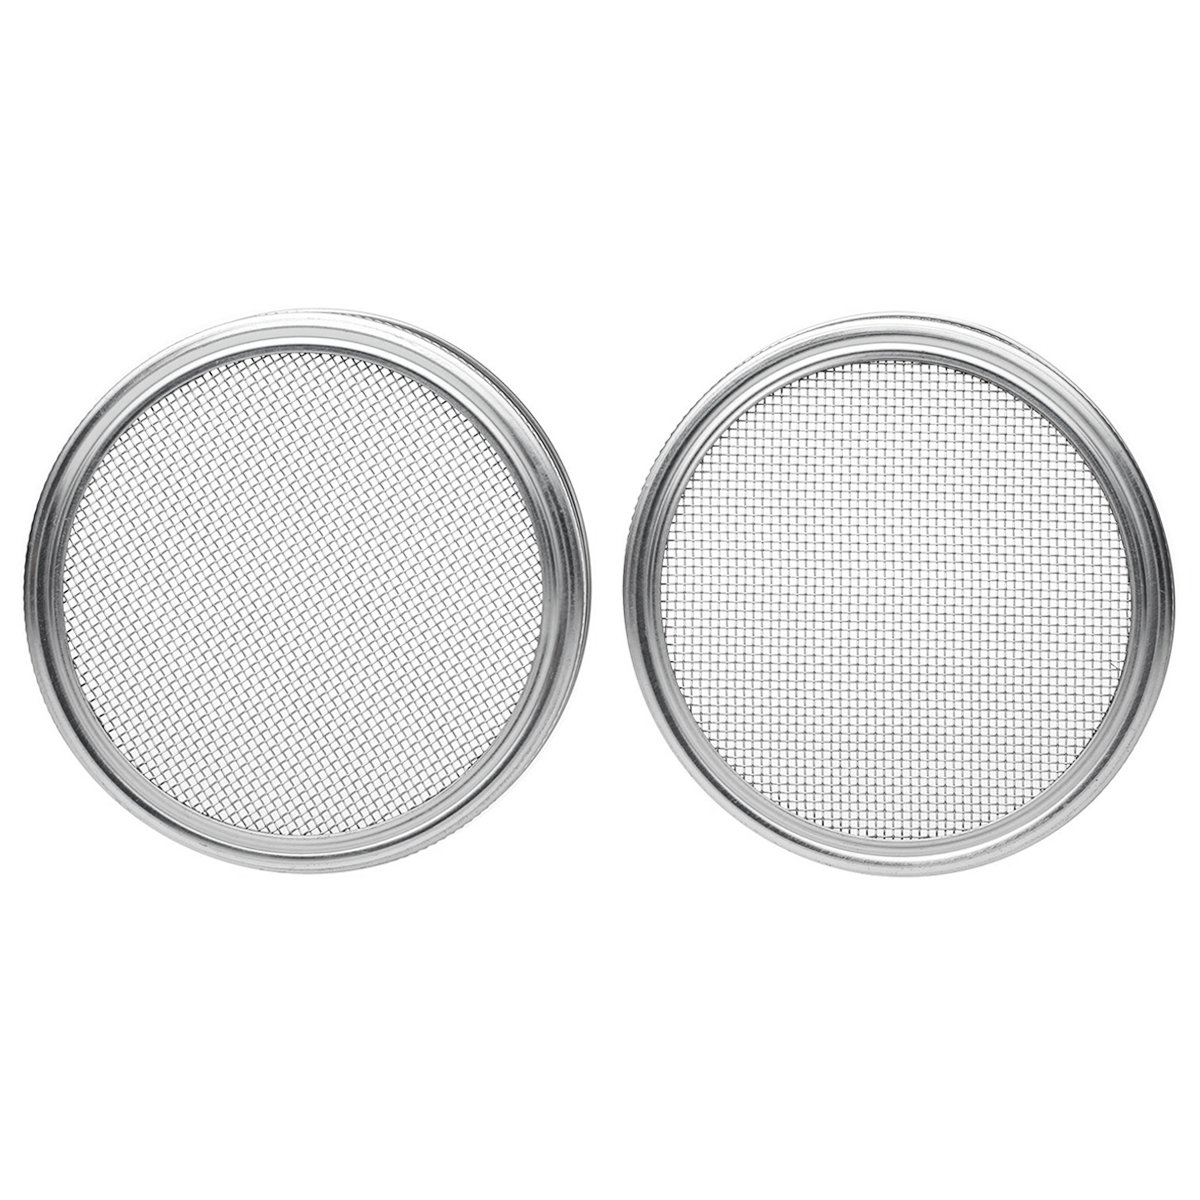 iiniim 2pcsステンレススチールSprouting Canning Jar Strainer Sprouting Lid for Wide Mouth Mason Jars Strainer Lid forカニングジャー、シード、Sprouting画面   B07D33JW7W